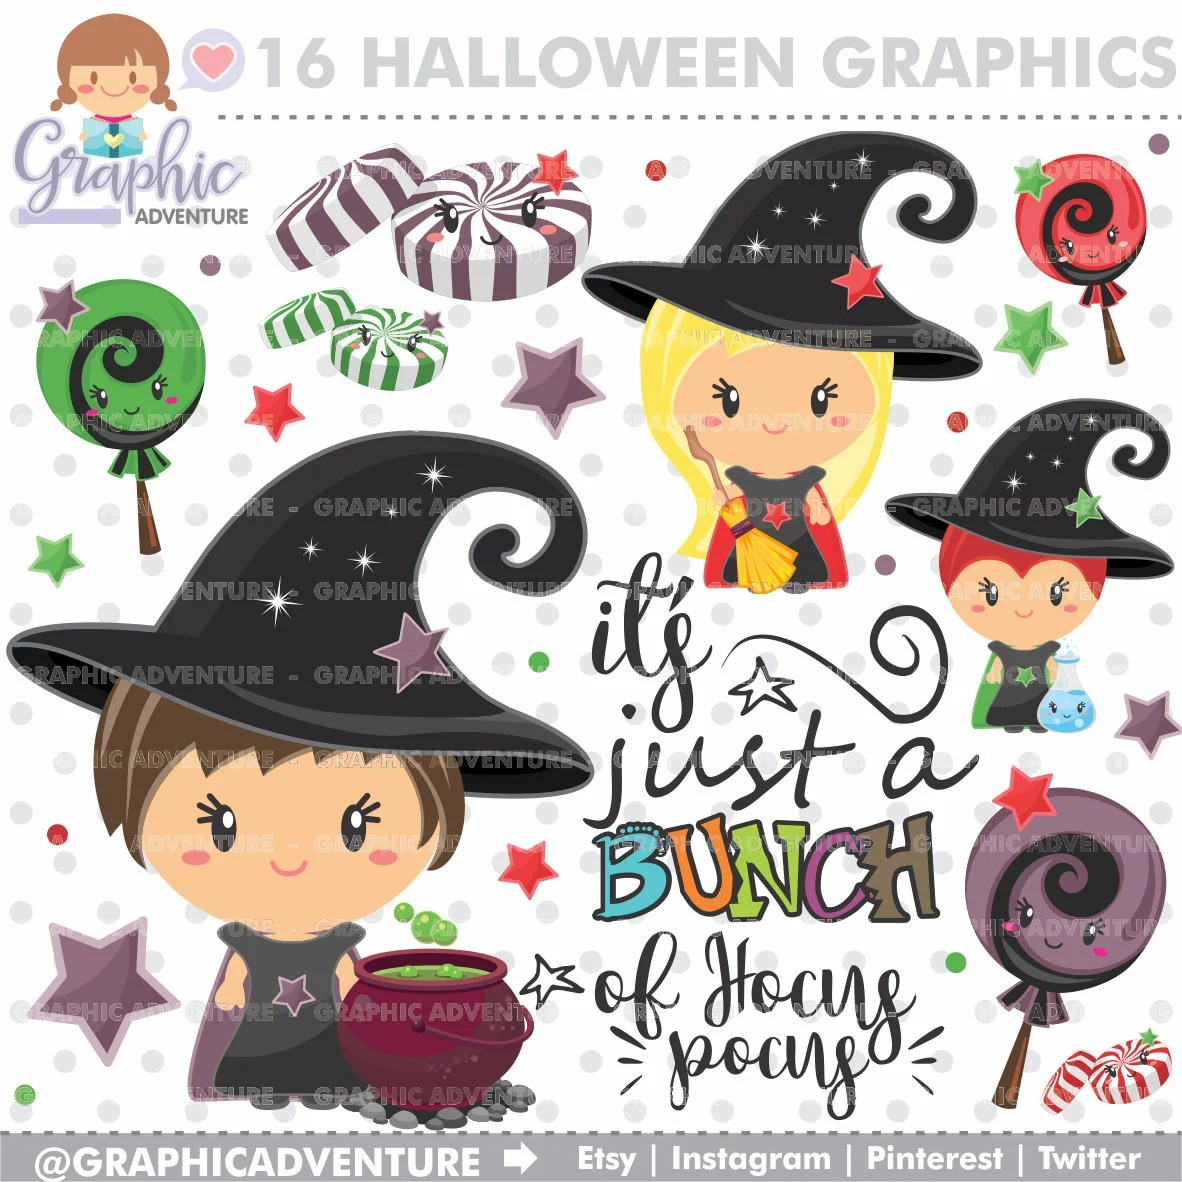 hight resolution of halloween clipart halloween graphic witch clipart commercial use witch graphic halloween party halloween candies halloween clip art